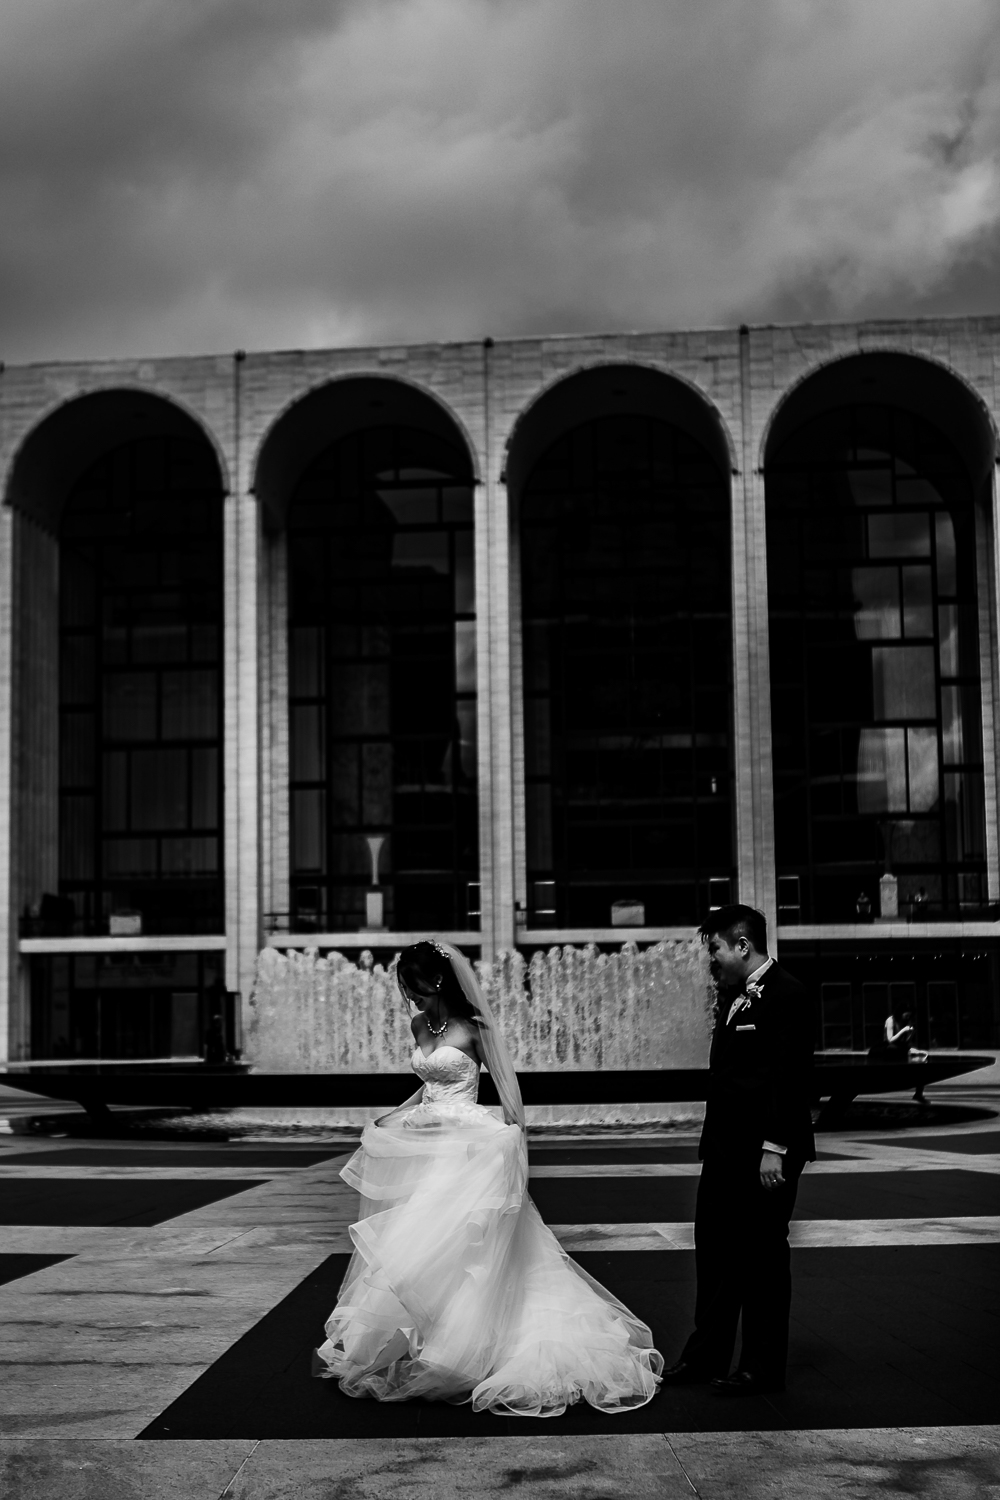 Black and white portrait of a couple posing for wedding portraits at Lincoln Center in New York City   Lincoln Center Wedding Photos   Jason and Susanna's Glam NYC Elopement